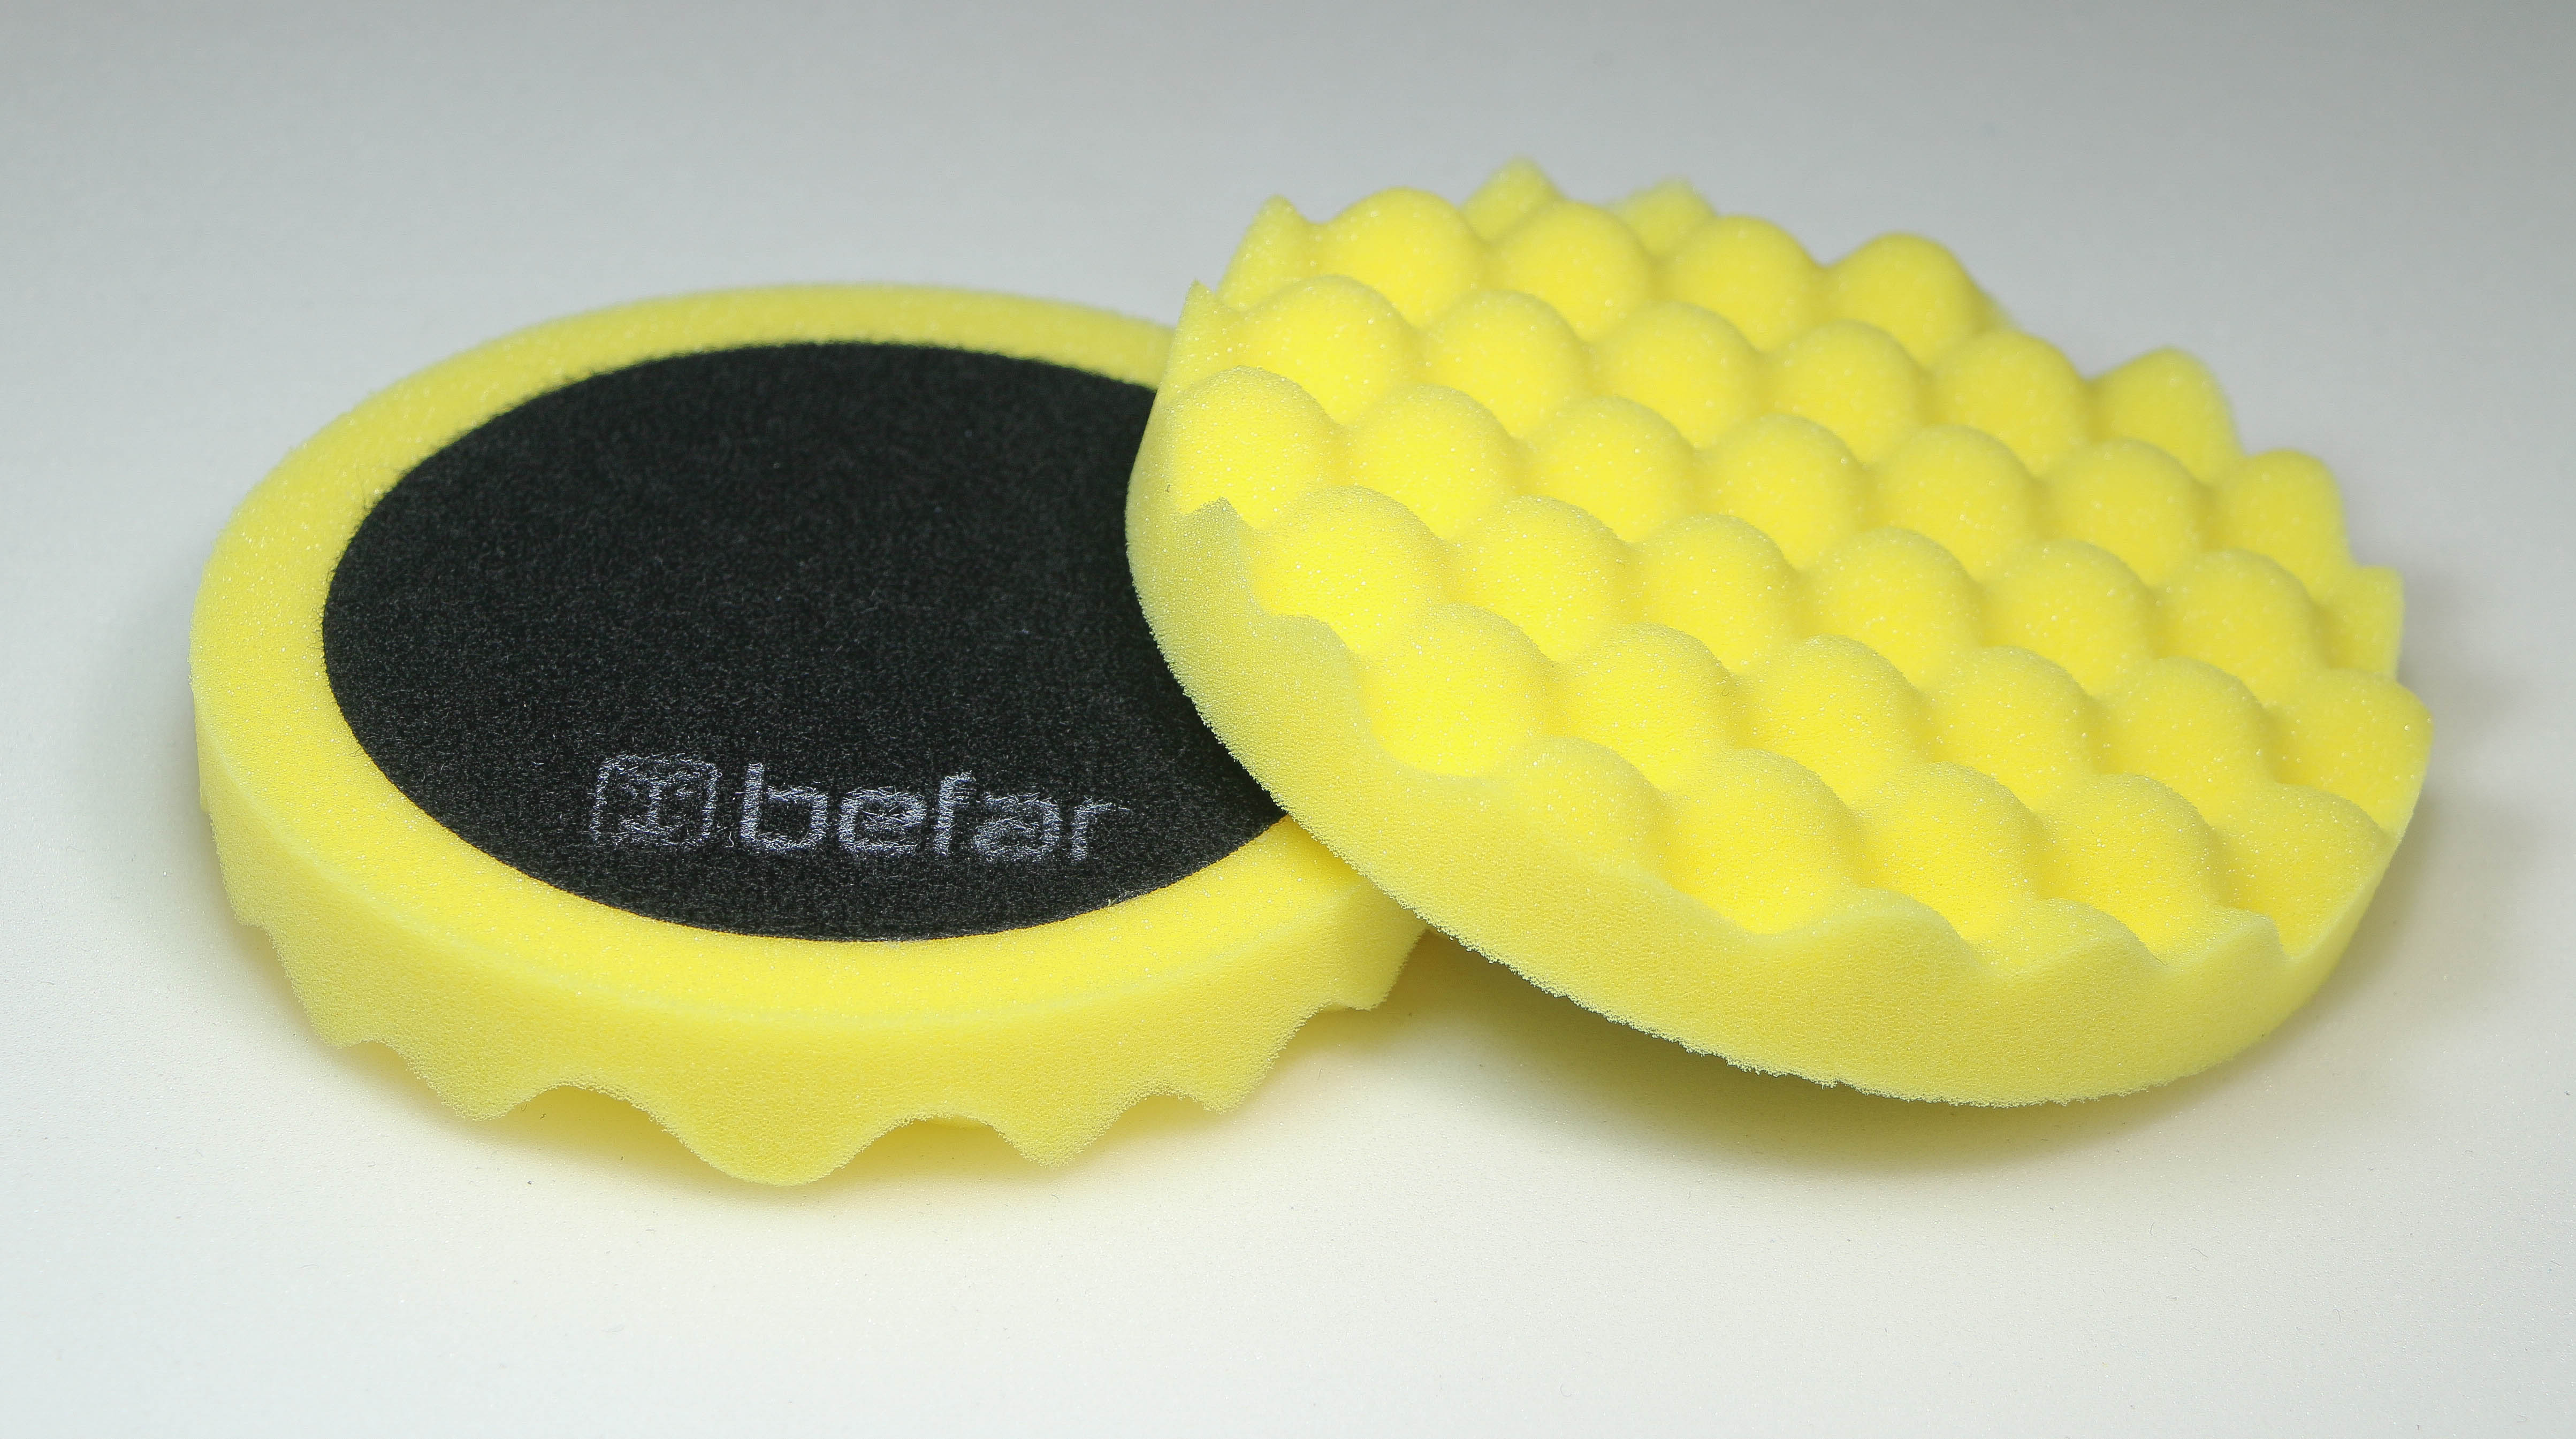 Befar Waffle - Piramit Velcro Compounding Foams